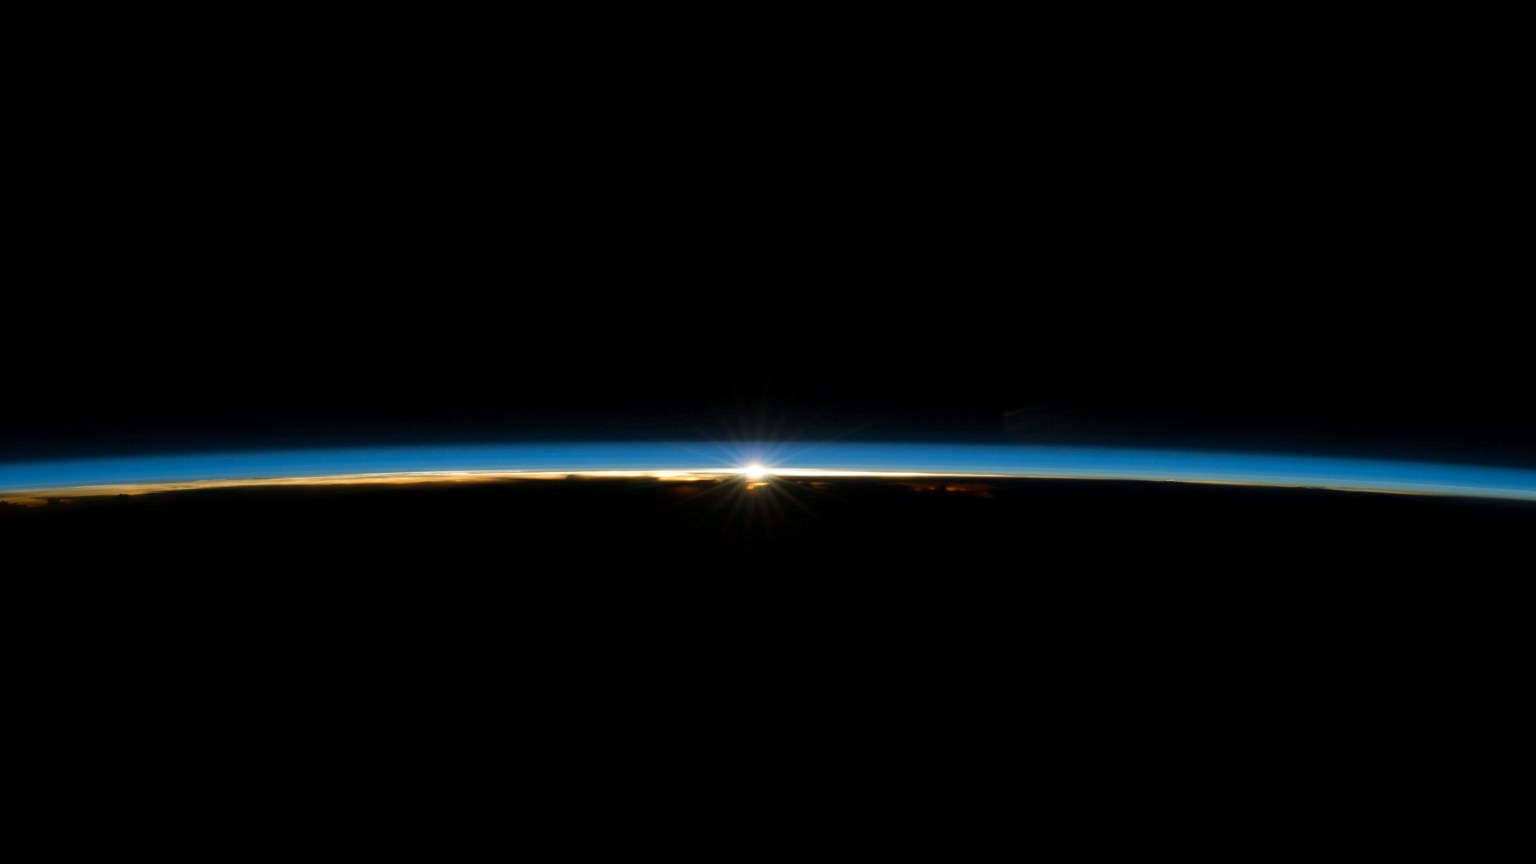 Earth's atmosphere 1536x864.jpg